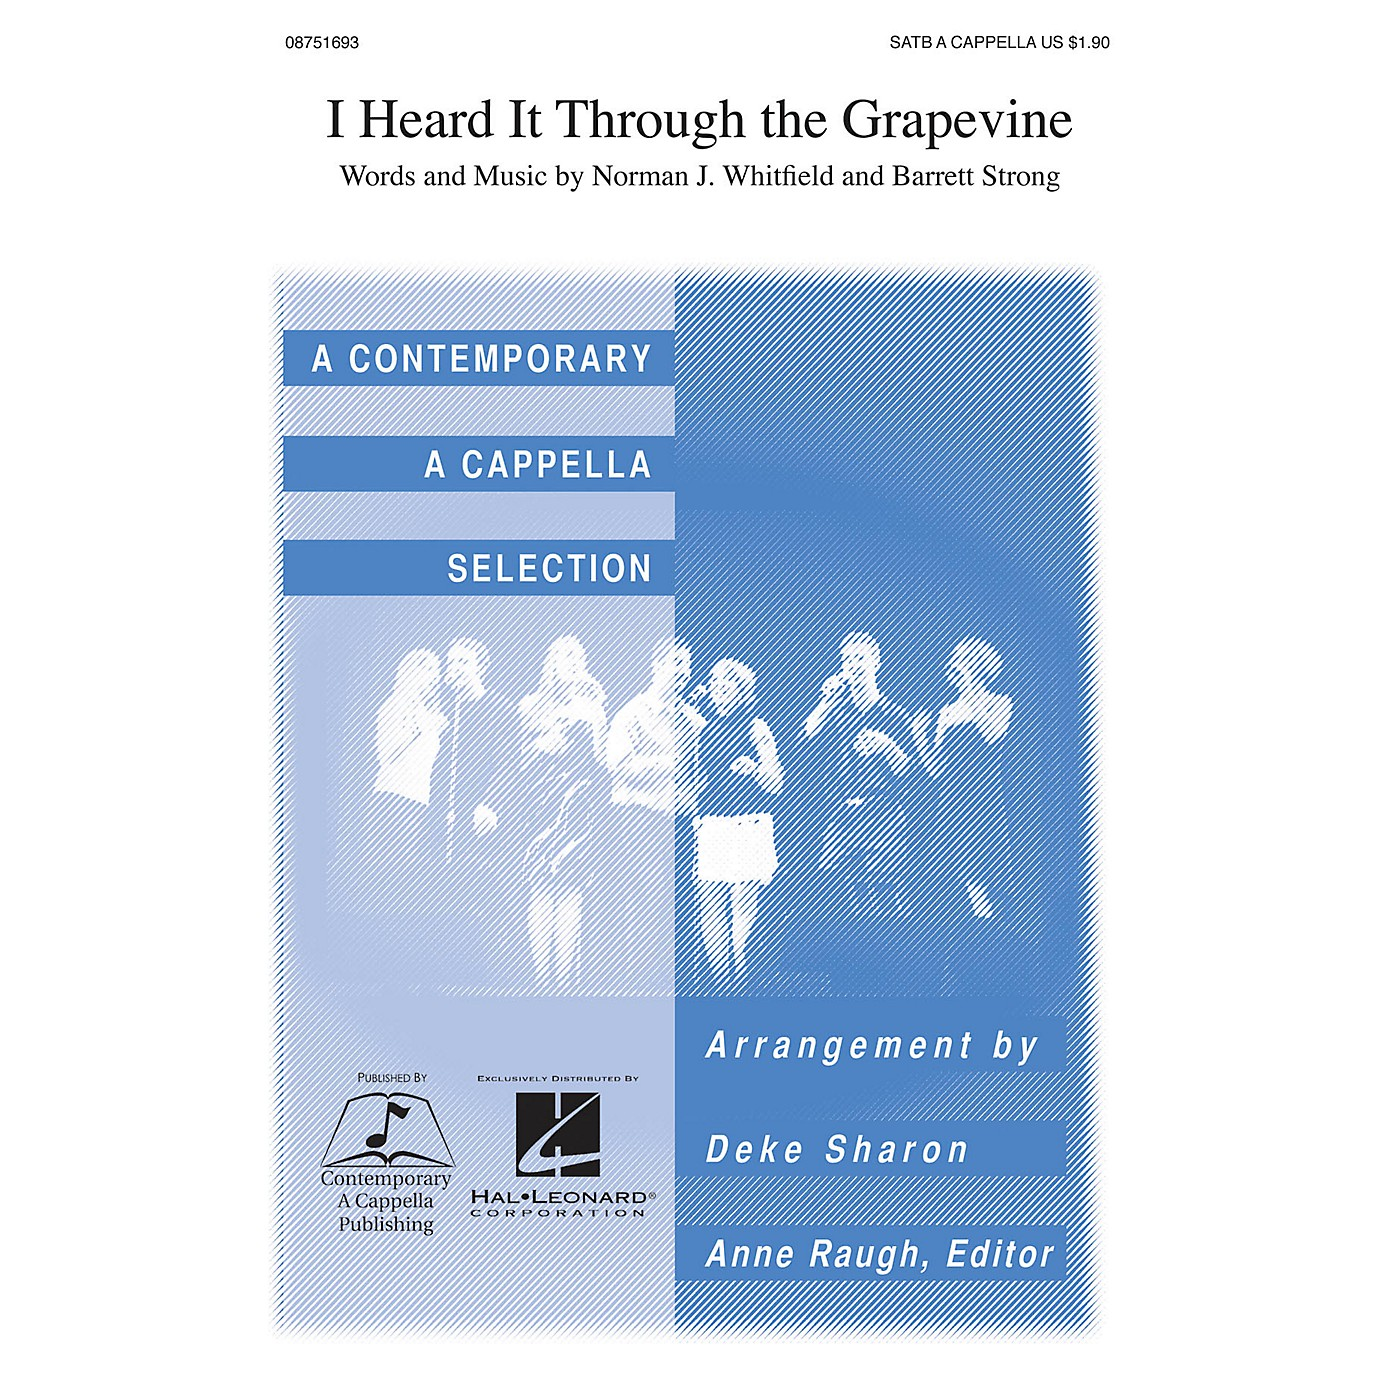 Contemporary A Cappella Publishing I Heard It Through the Grapevine SATB a cappella by Marvin Gaye arranged by Deke Sharon thumbnail